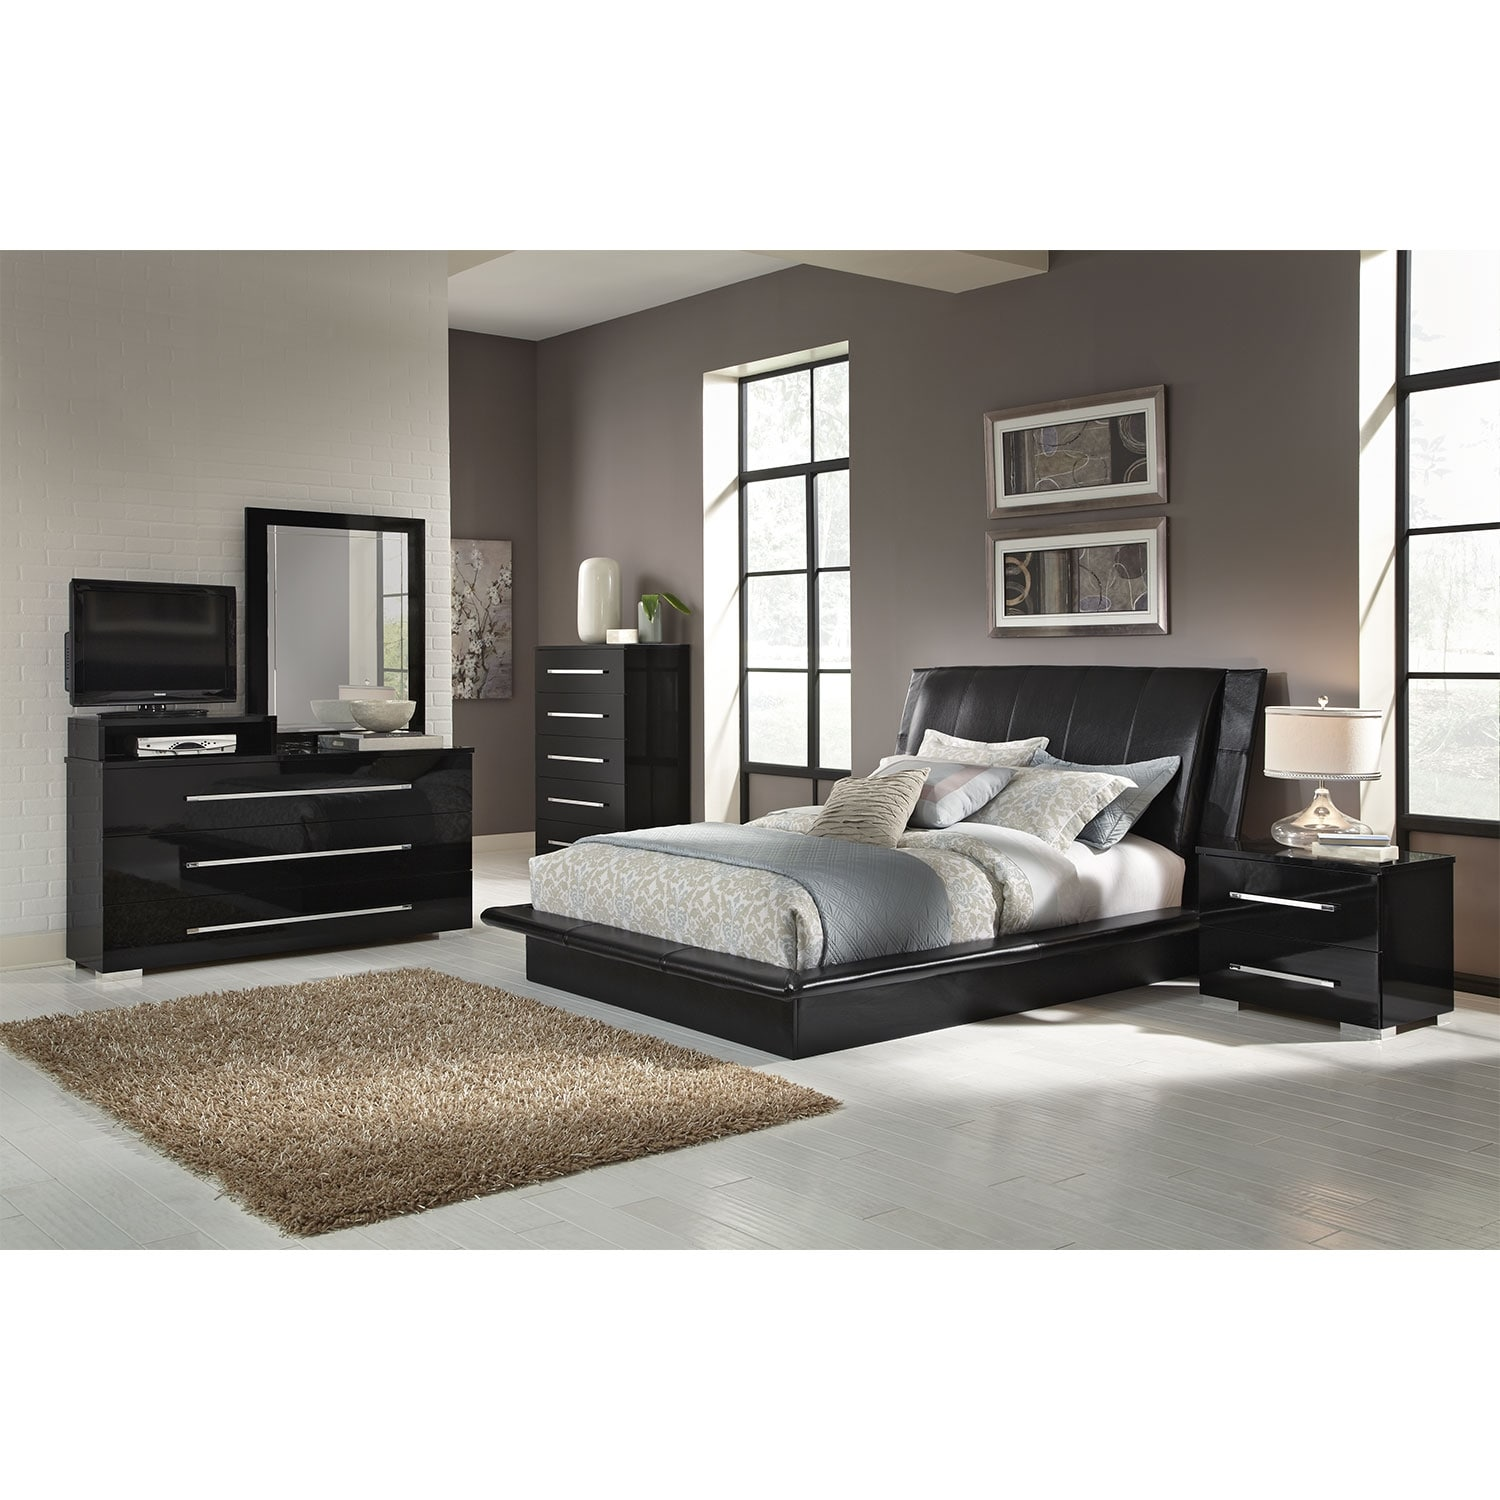 city furniture bedroom set dimora 7 upholstered bedroom set with media 14825